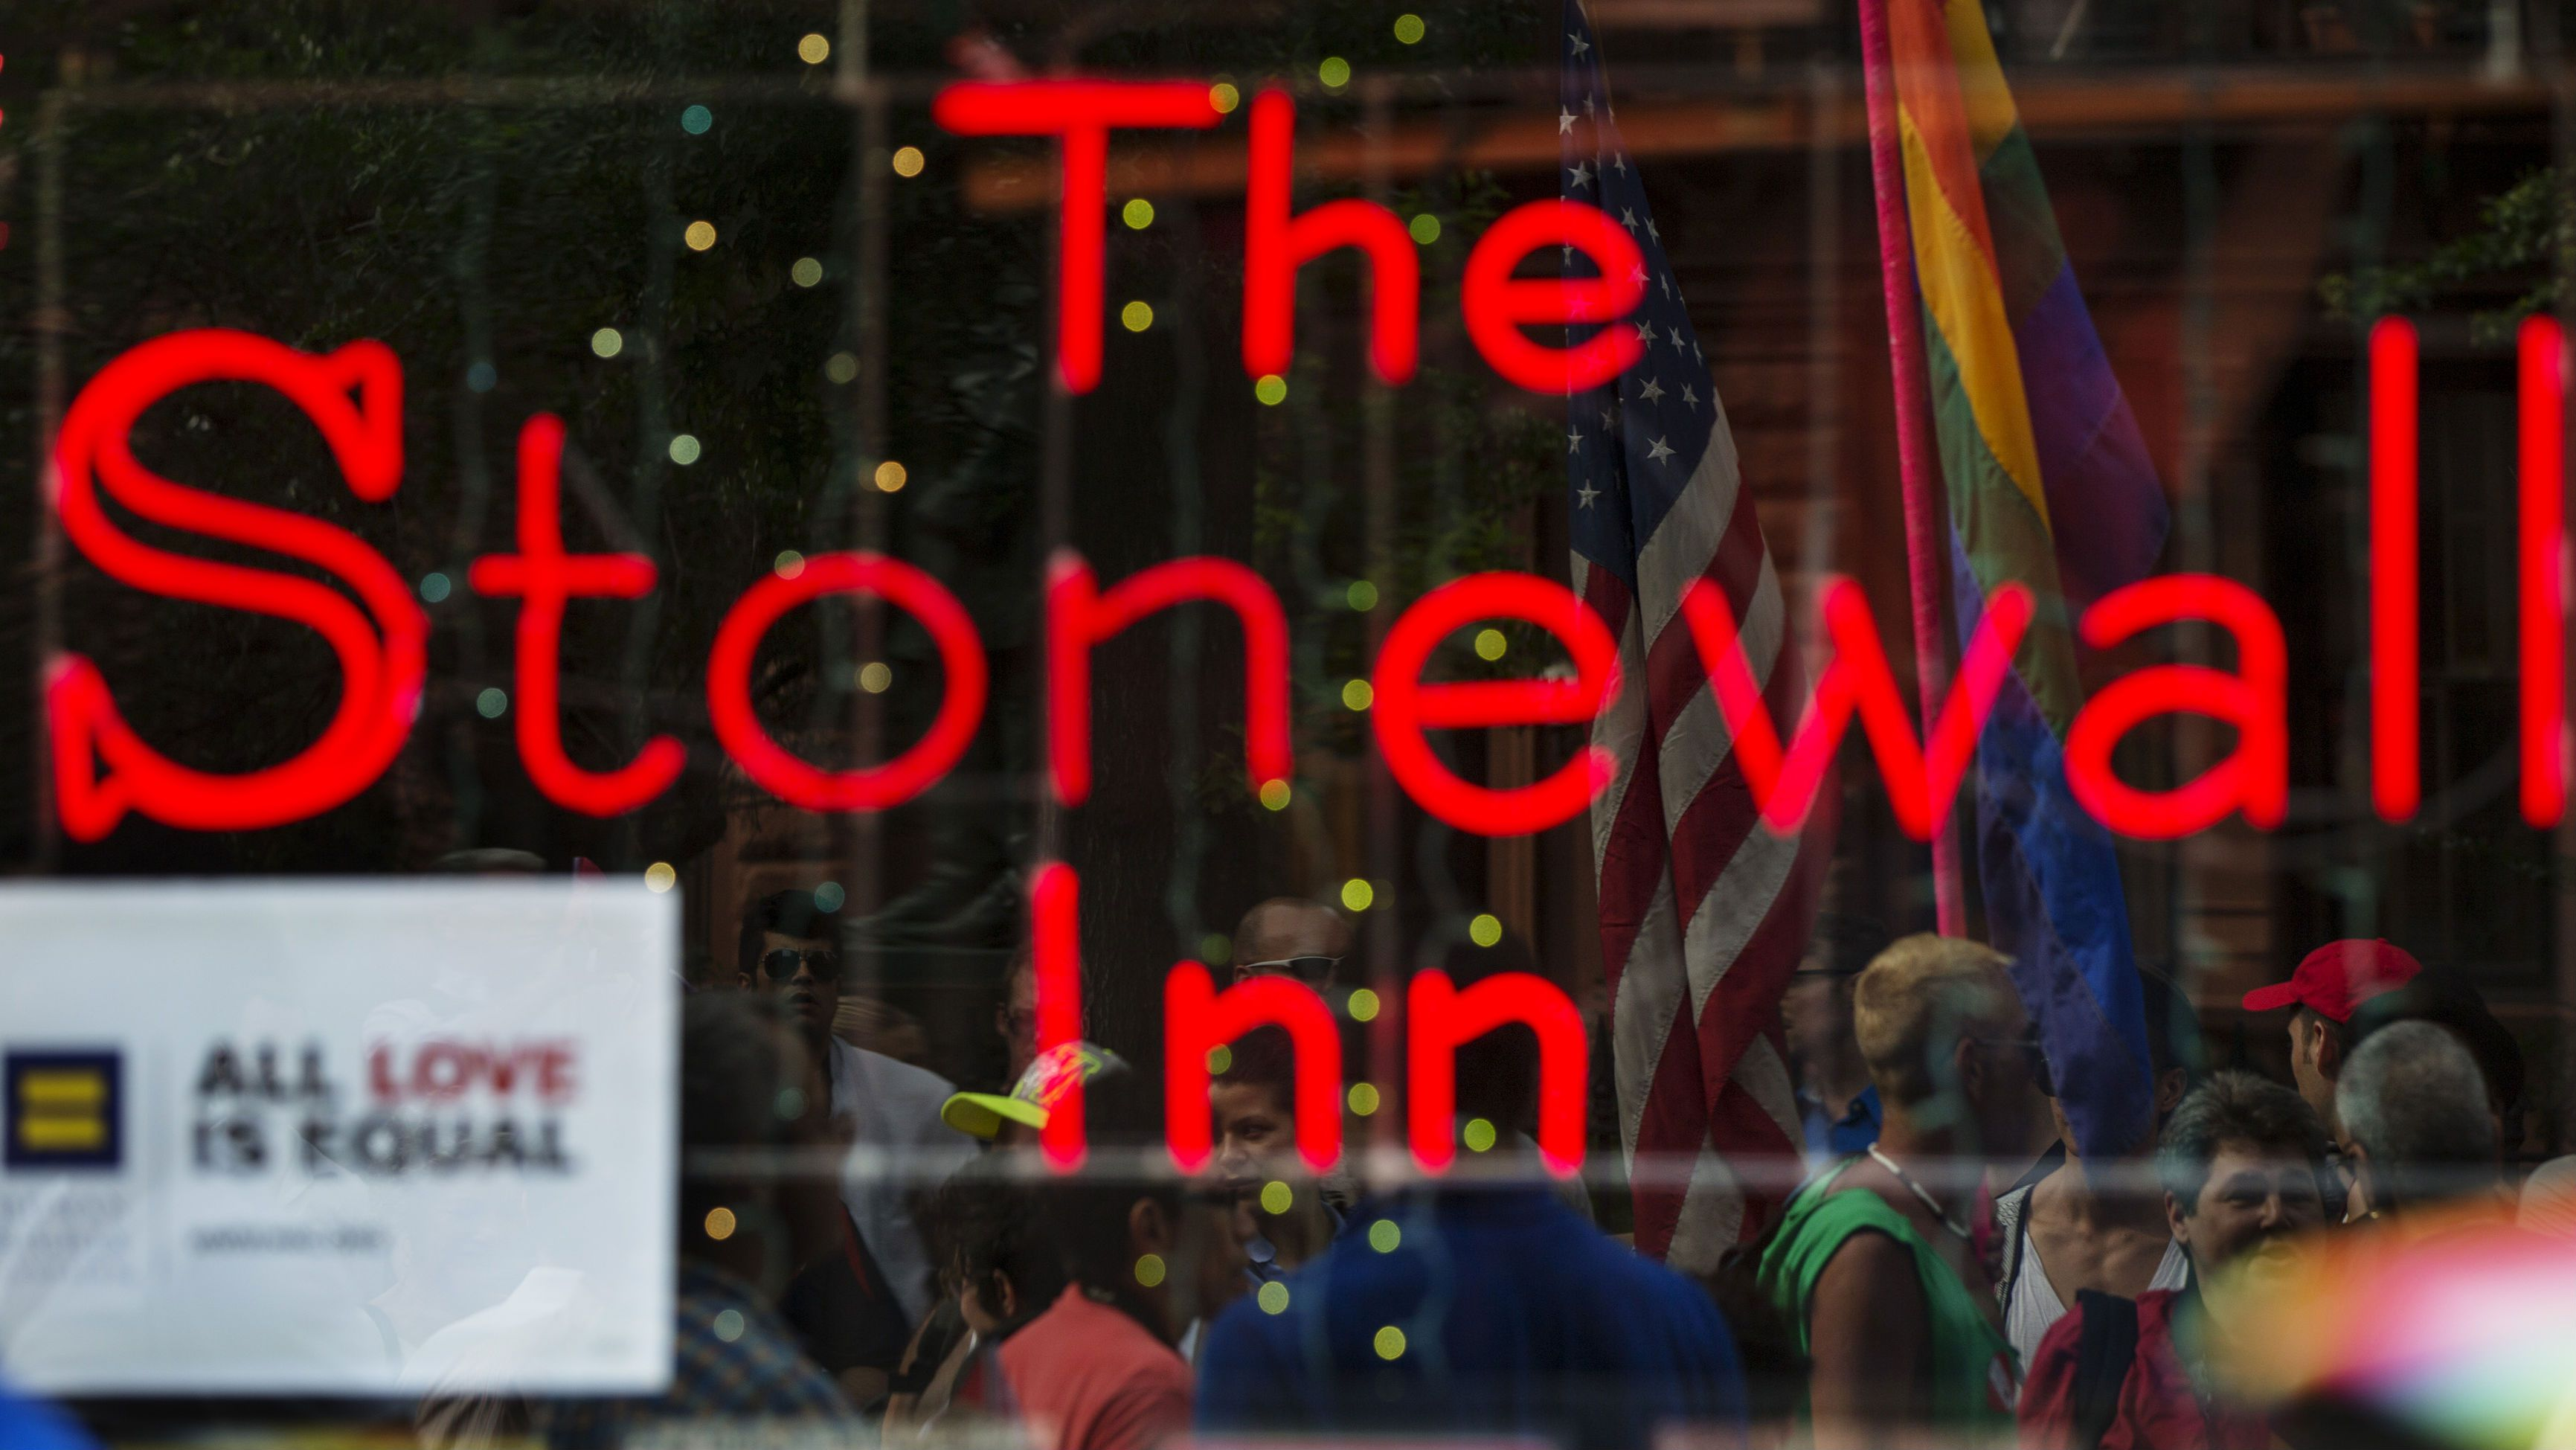 People celebrating the U.S. Supreme Court ruling against the Defense of Marriage Act can be seen reflected in the window of the Stonewall Inn in New York June 26, 2013. The U.S. Supreme Court delivered a landmark victory for gay rights on Wednesday by forcing the federal government to recognize same-sex marriages in states where it is legal and paving the way for it in California, the most populous state. REUTERS/Lucas Jackson (UNITED STATES - Tags: POLITICS SOCIETY)